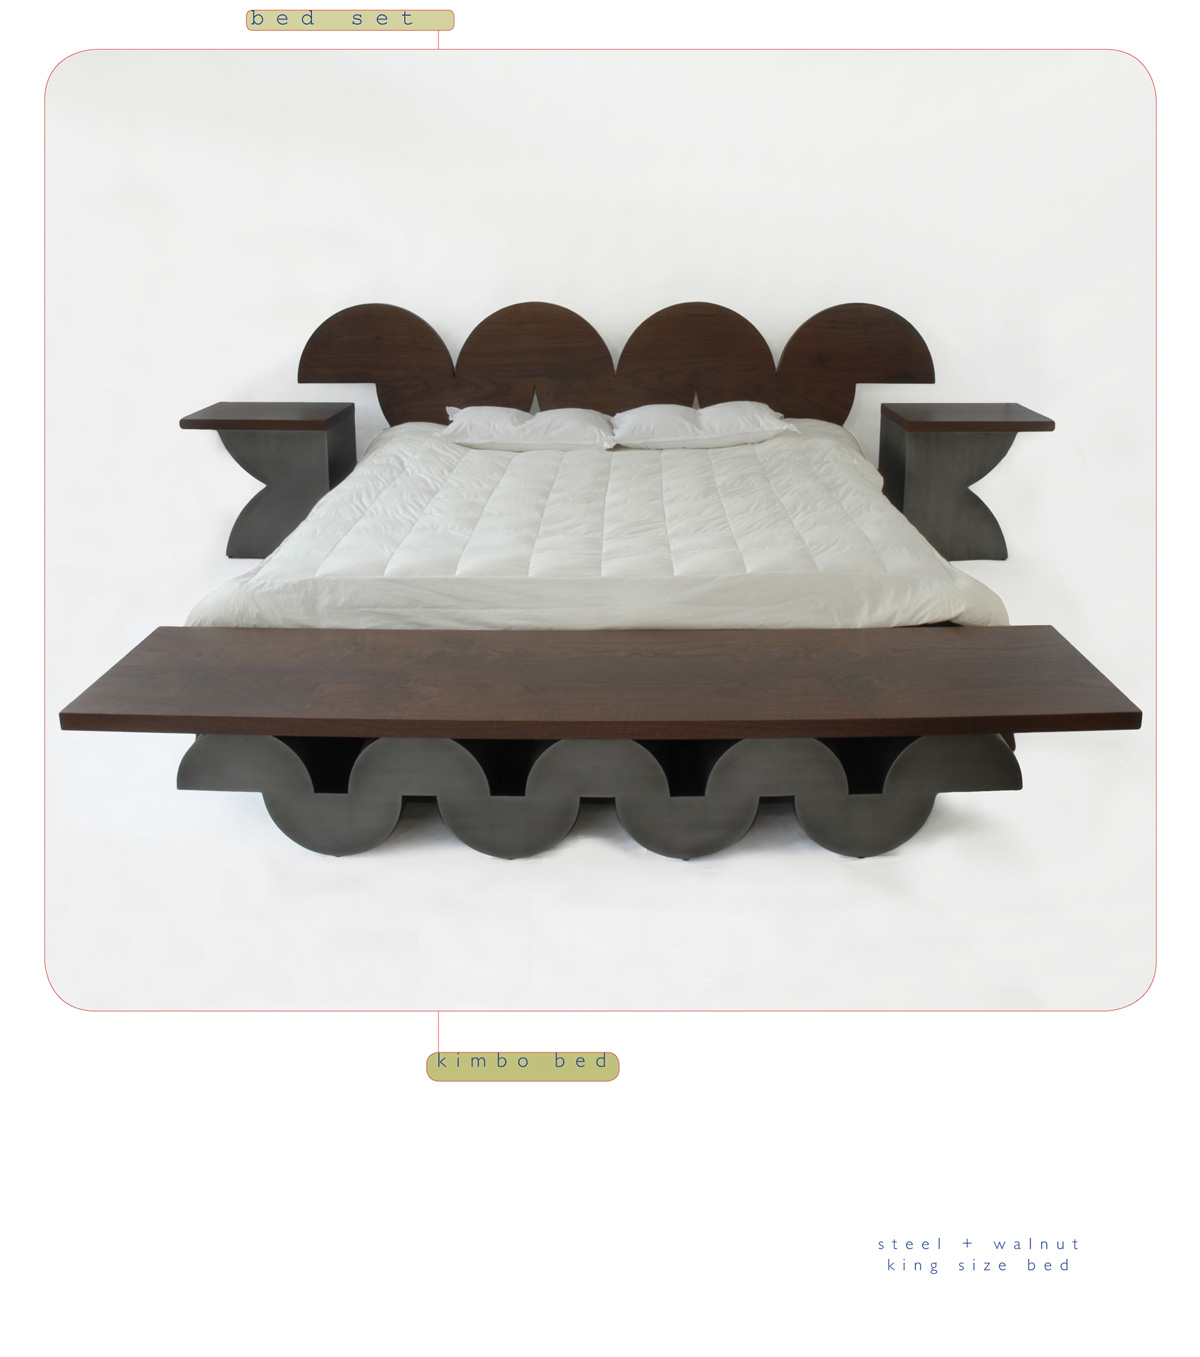 Kimbo is a contemporary king bed made out of steel and walnut made by Chad Manley Design.